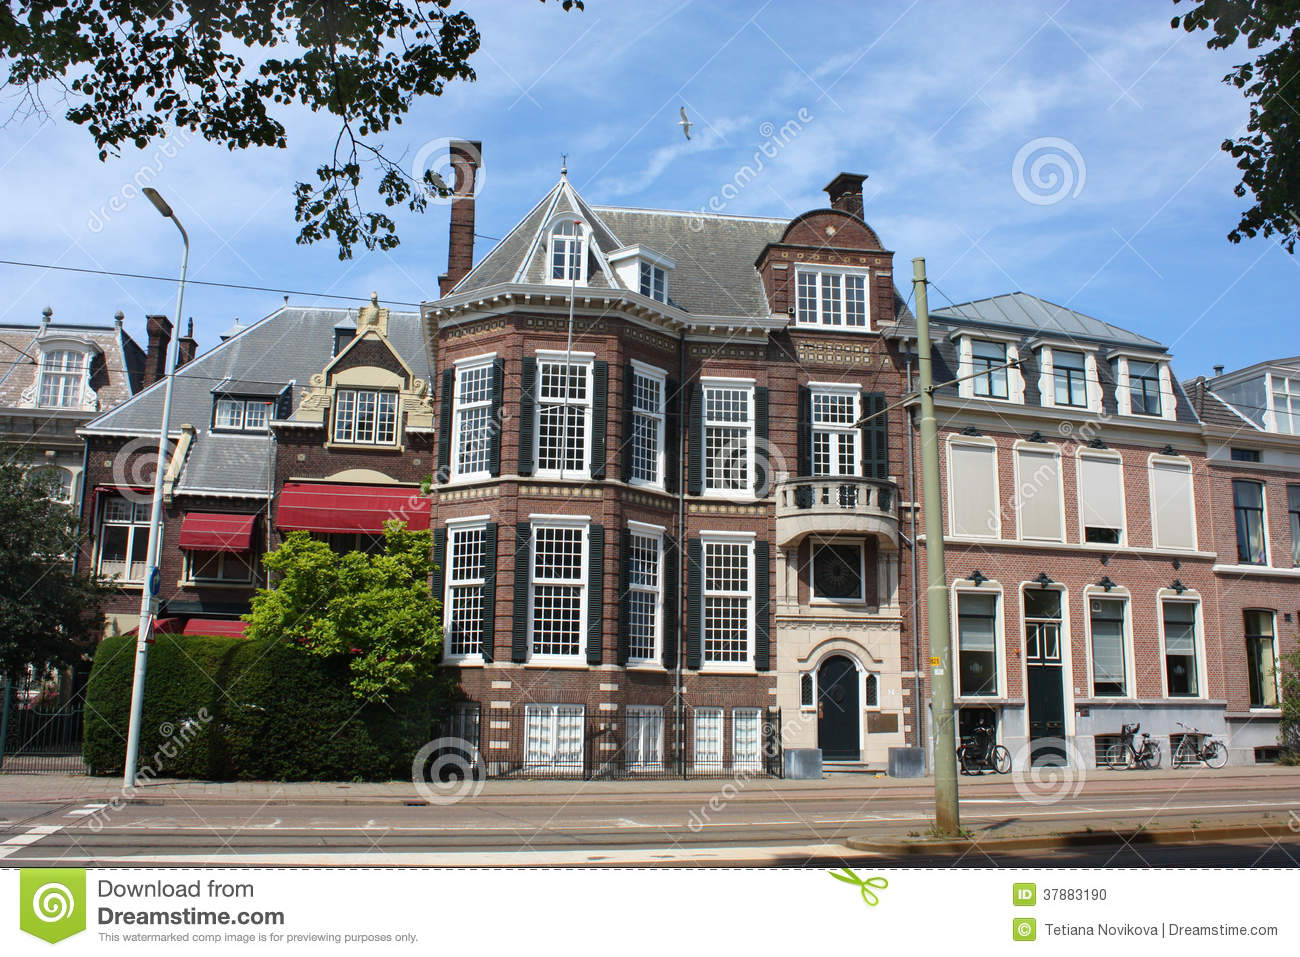 houses in den haag stock photo image 37883190